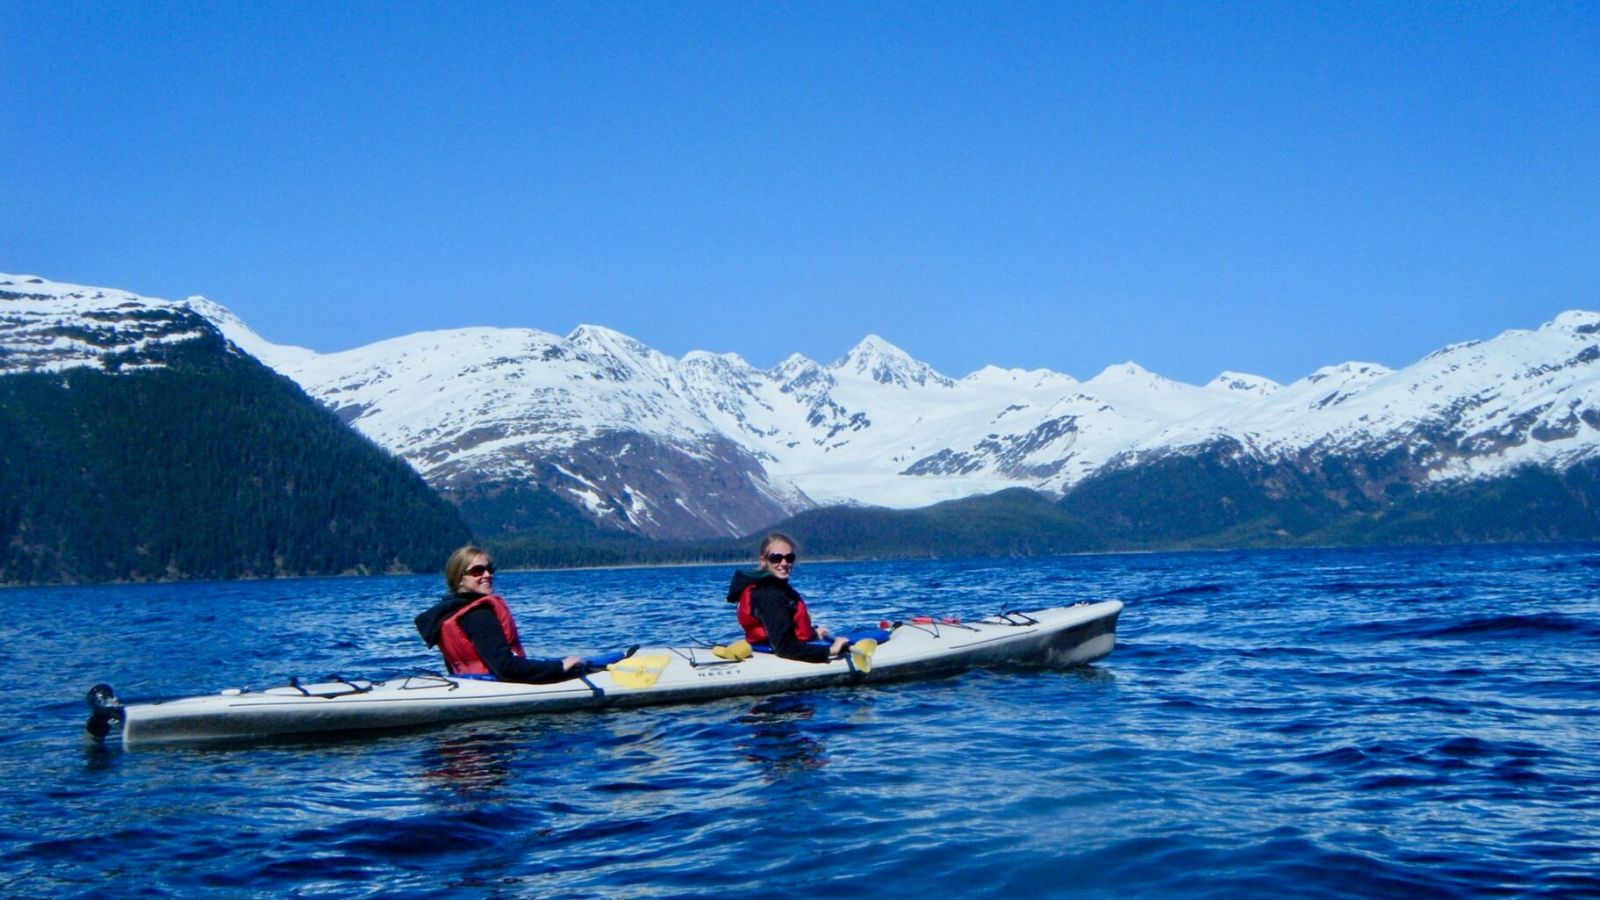 Gwen and a friend kayaking in front of snow-capped mountains